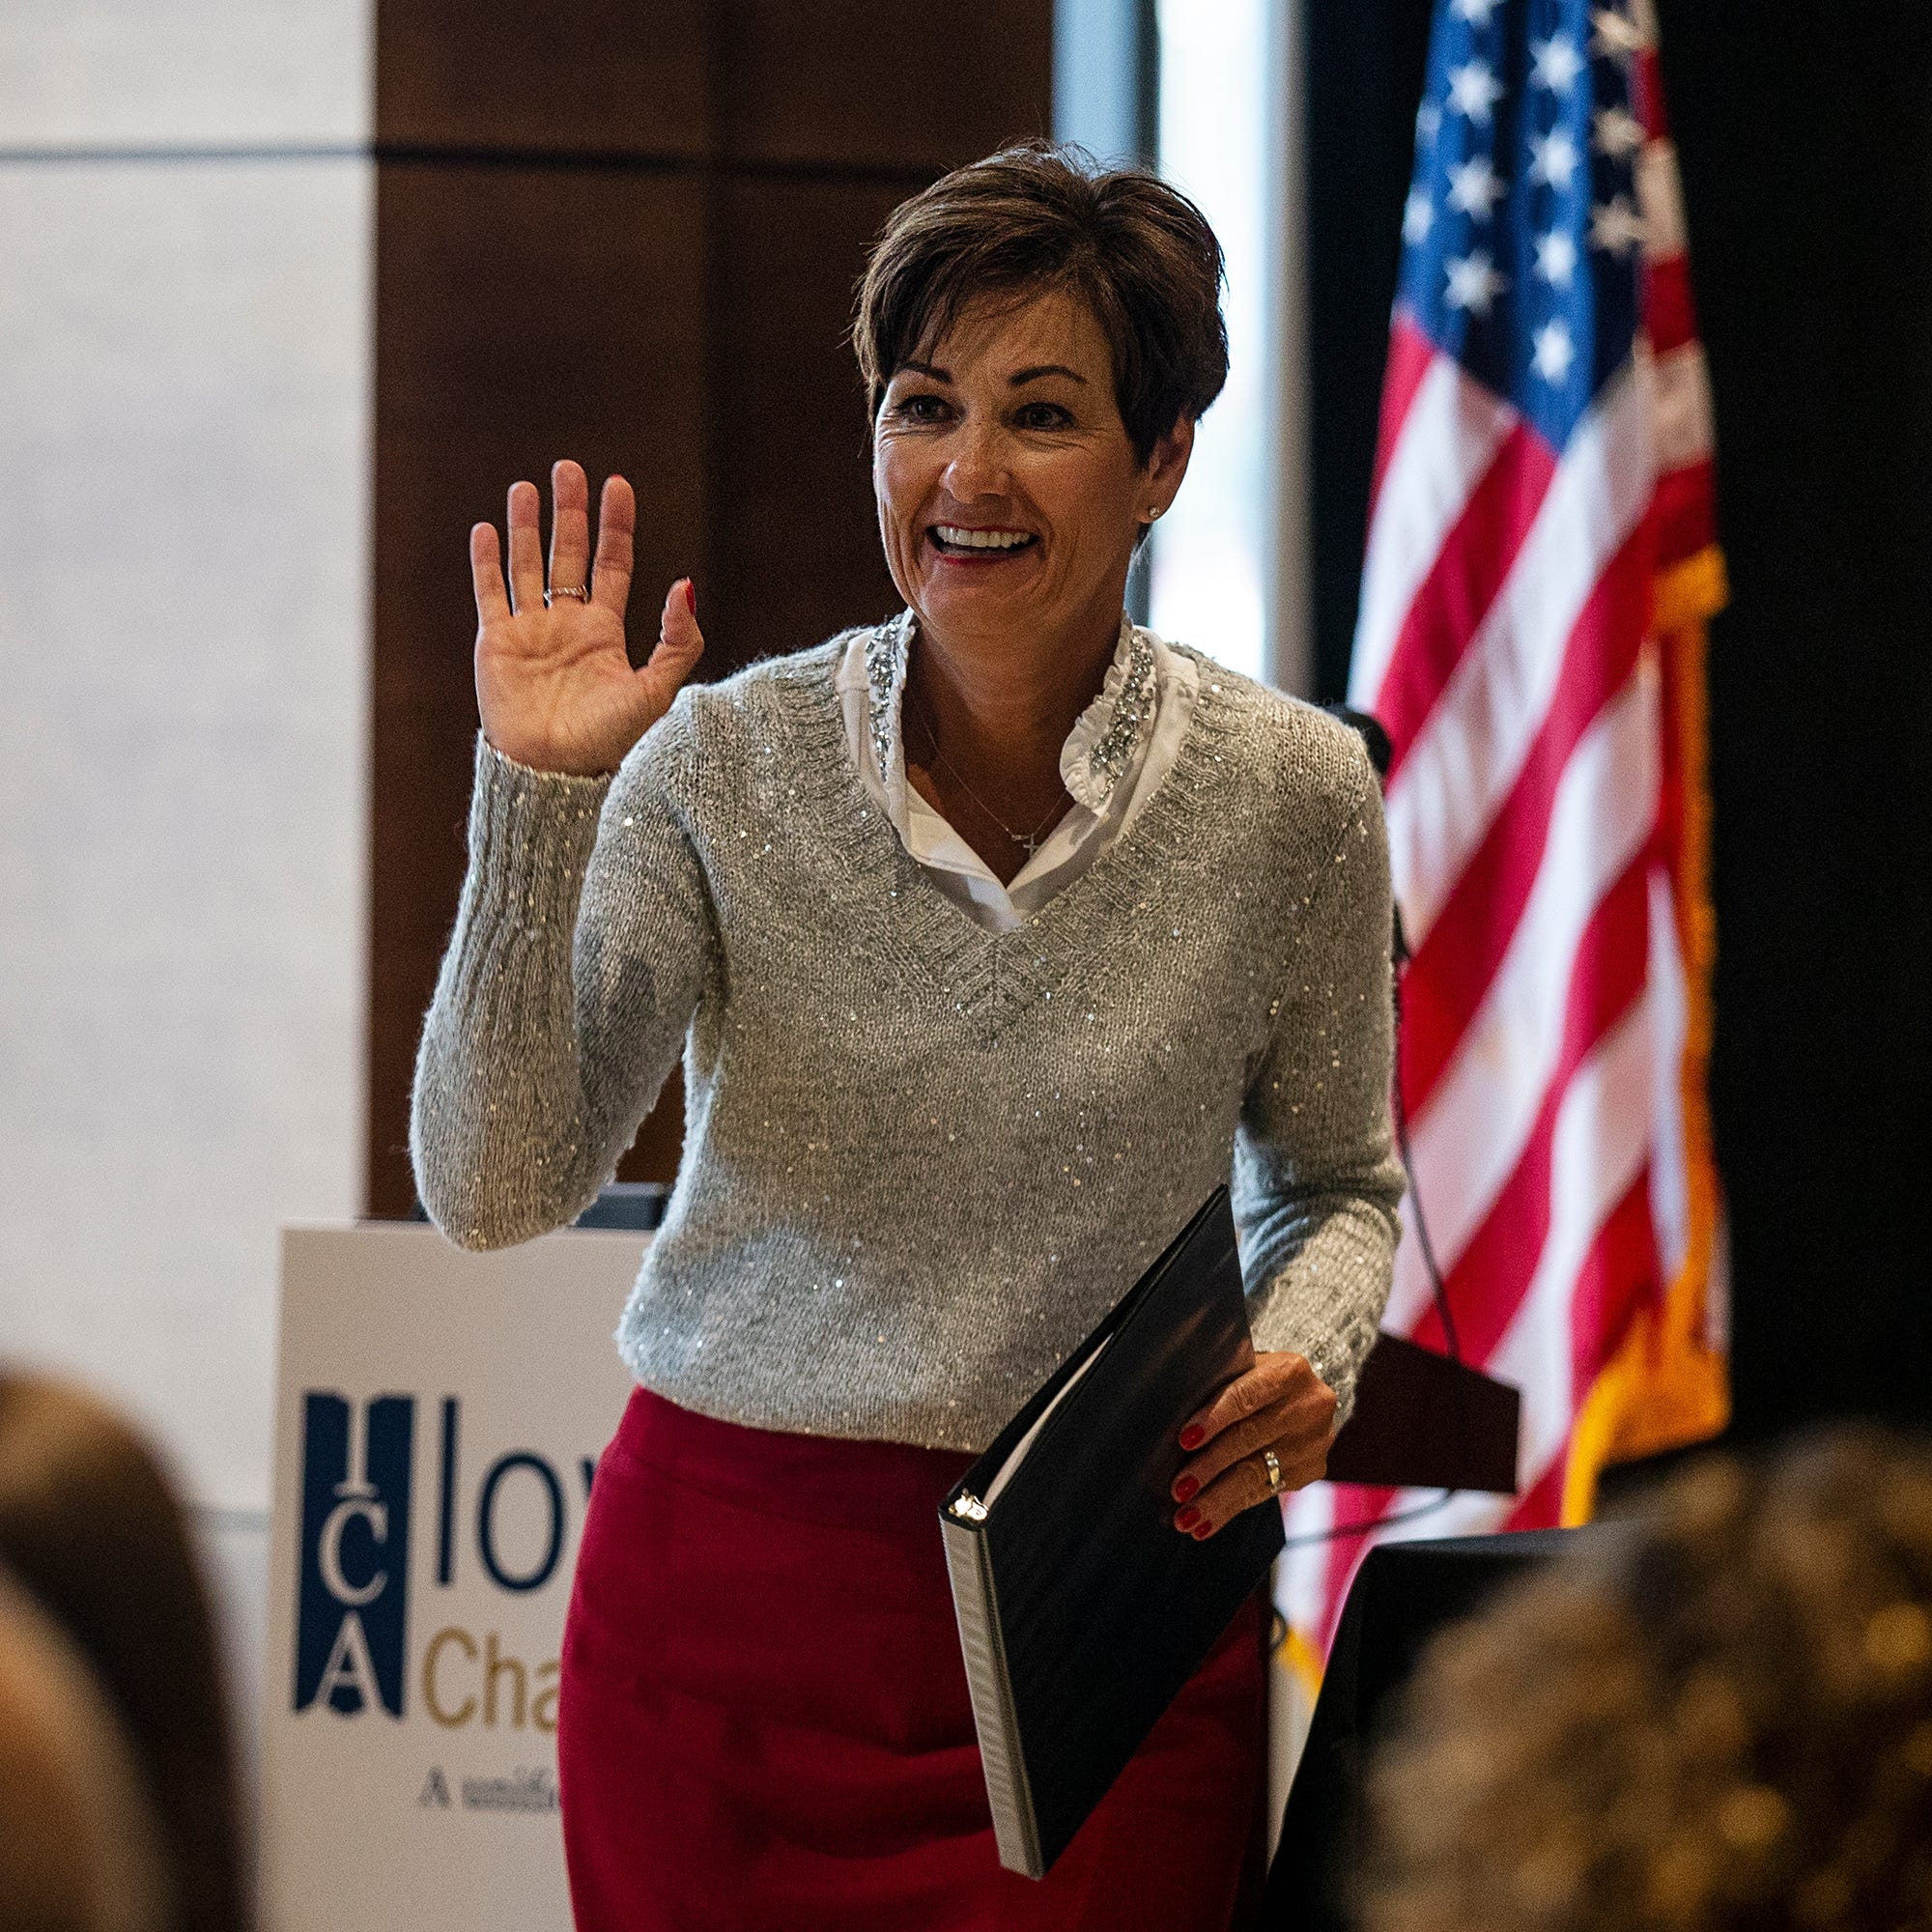 Iowa Governor Kim Reynolds makes (friendly) wager on an Iowa State Alamo Bowl victory